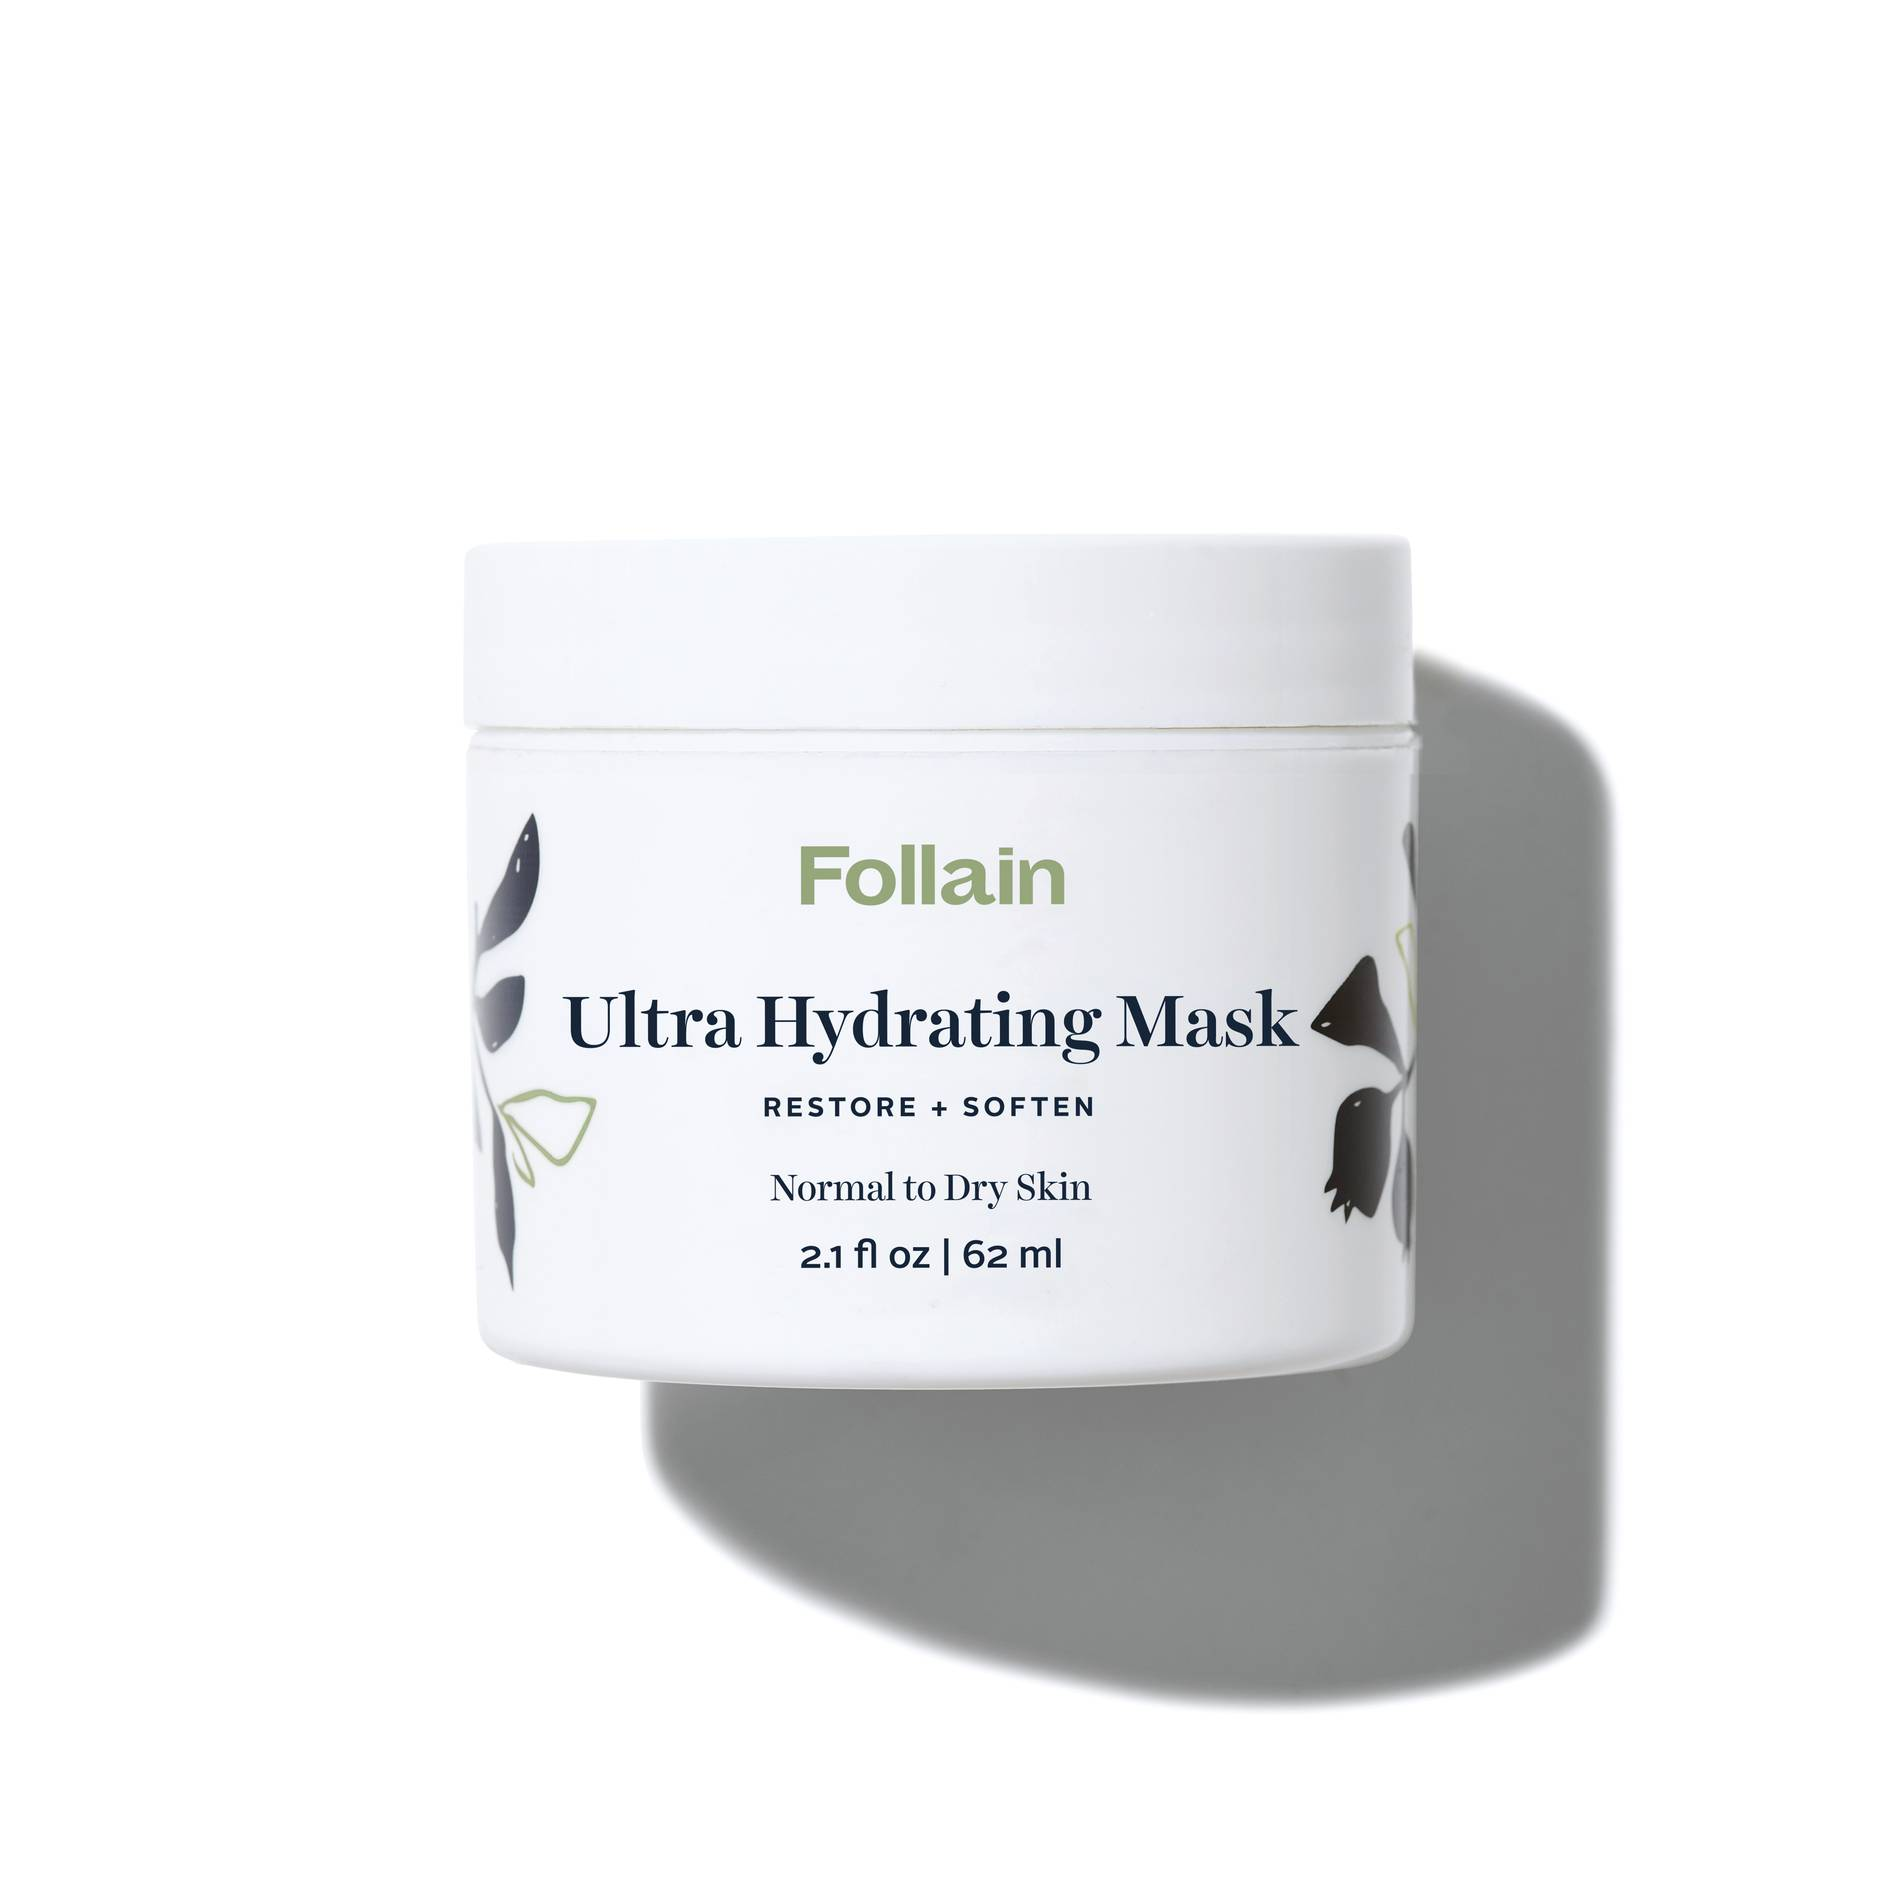 FollainUltraHydratingMask.jpg